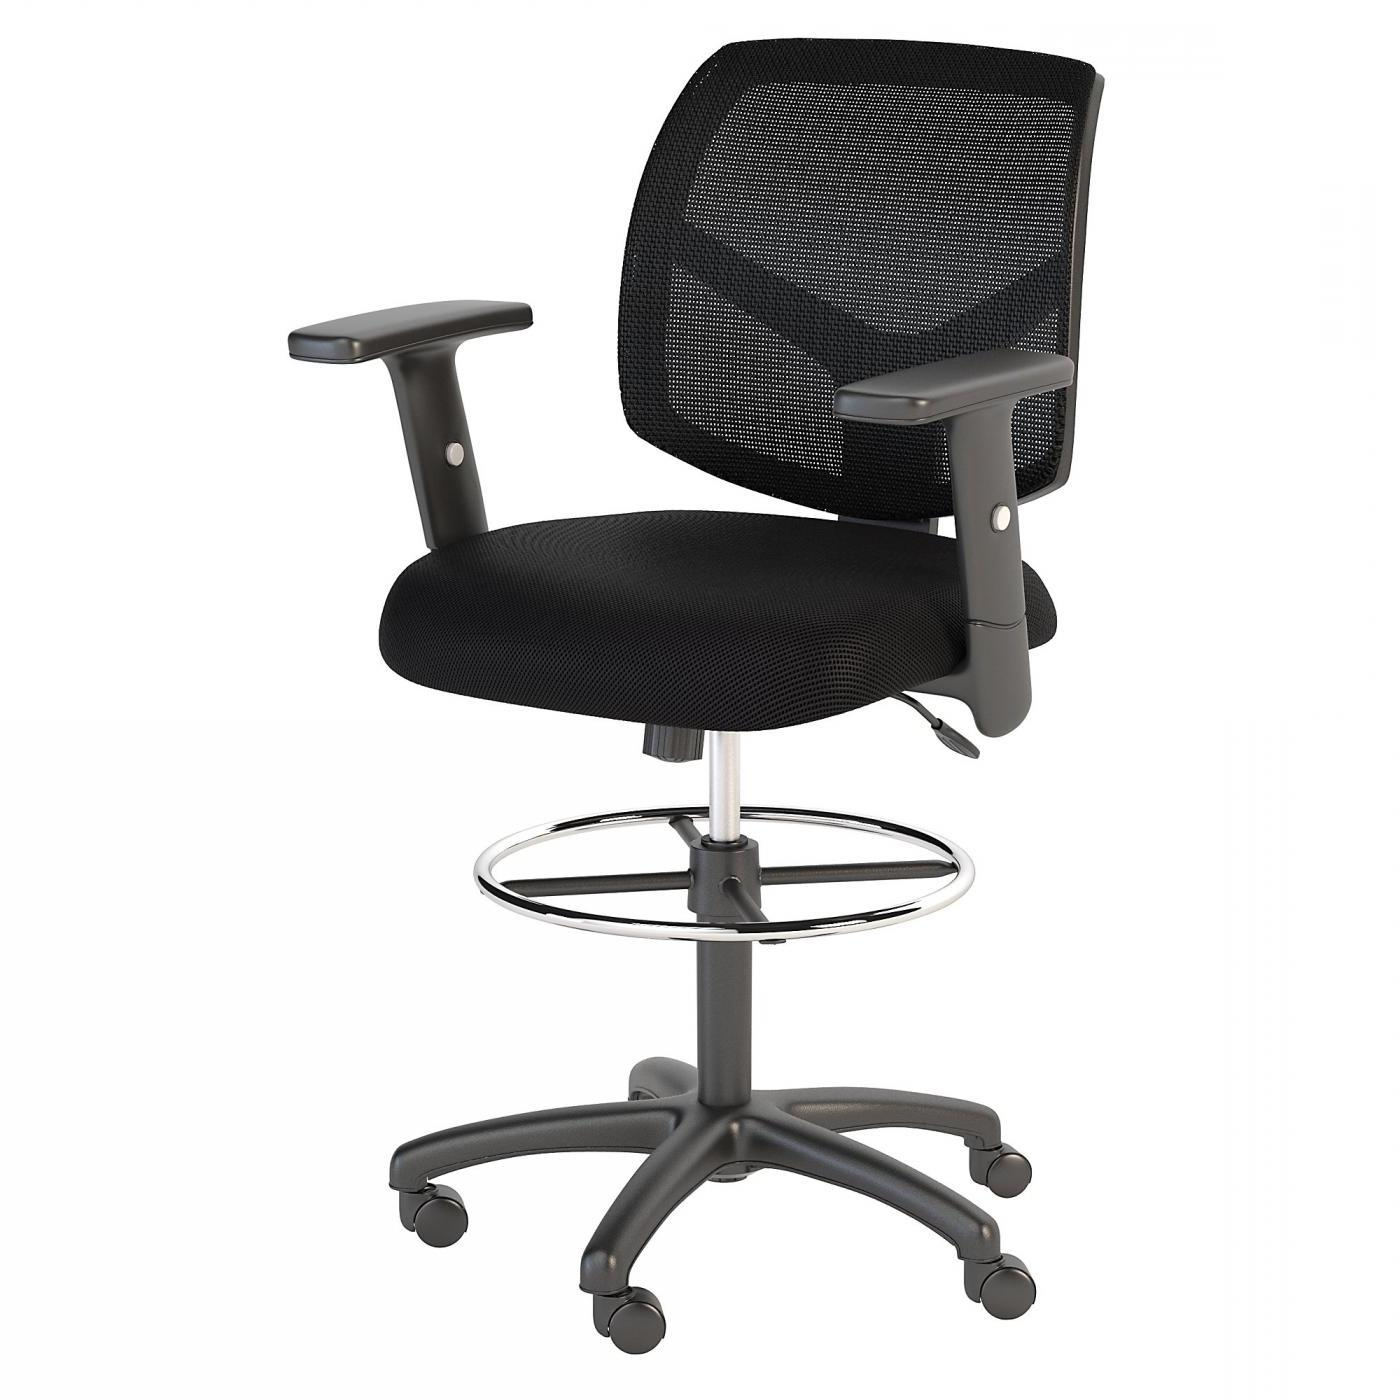 <font color=#c60><b>BUSH BUSINESS FURNITURE PETITE MESH BACK DRAFTING CHAIR WITH CHROME FOOT RING. FREE SHIPPING</font></b> </font></b>